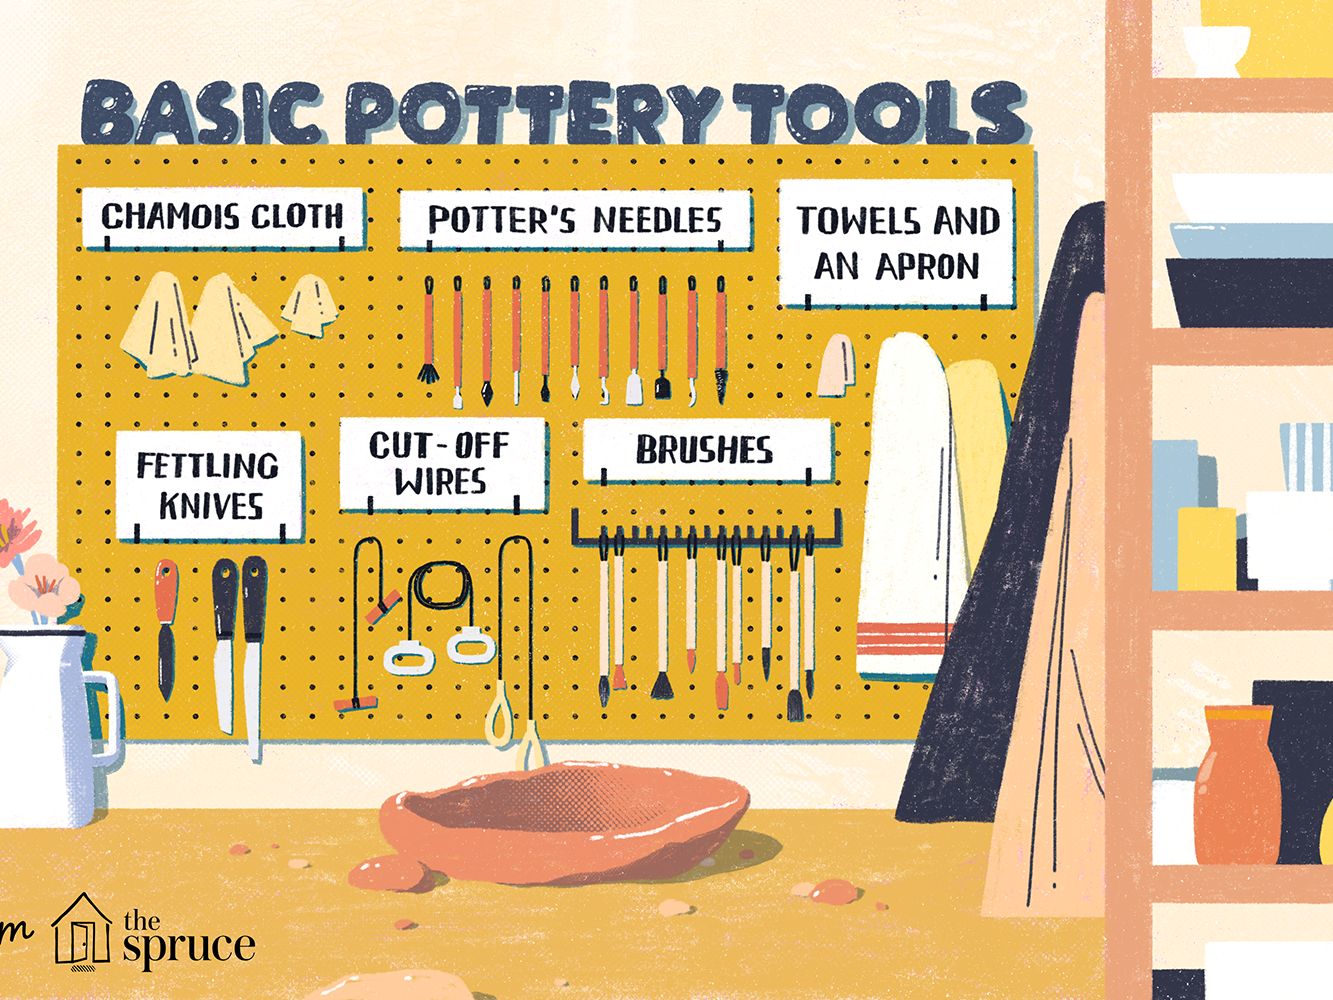 Pottery Clay Sculpture Carving Tools Drawing Cleaning Artists Paint Brushes Big Head Clay Cleaning Bamboo Brushes Shapers